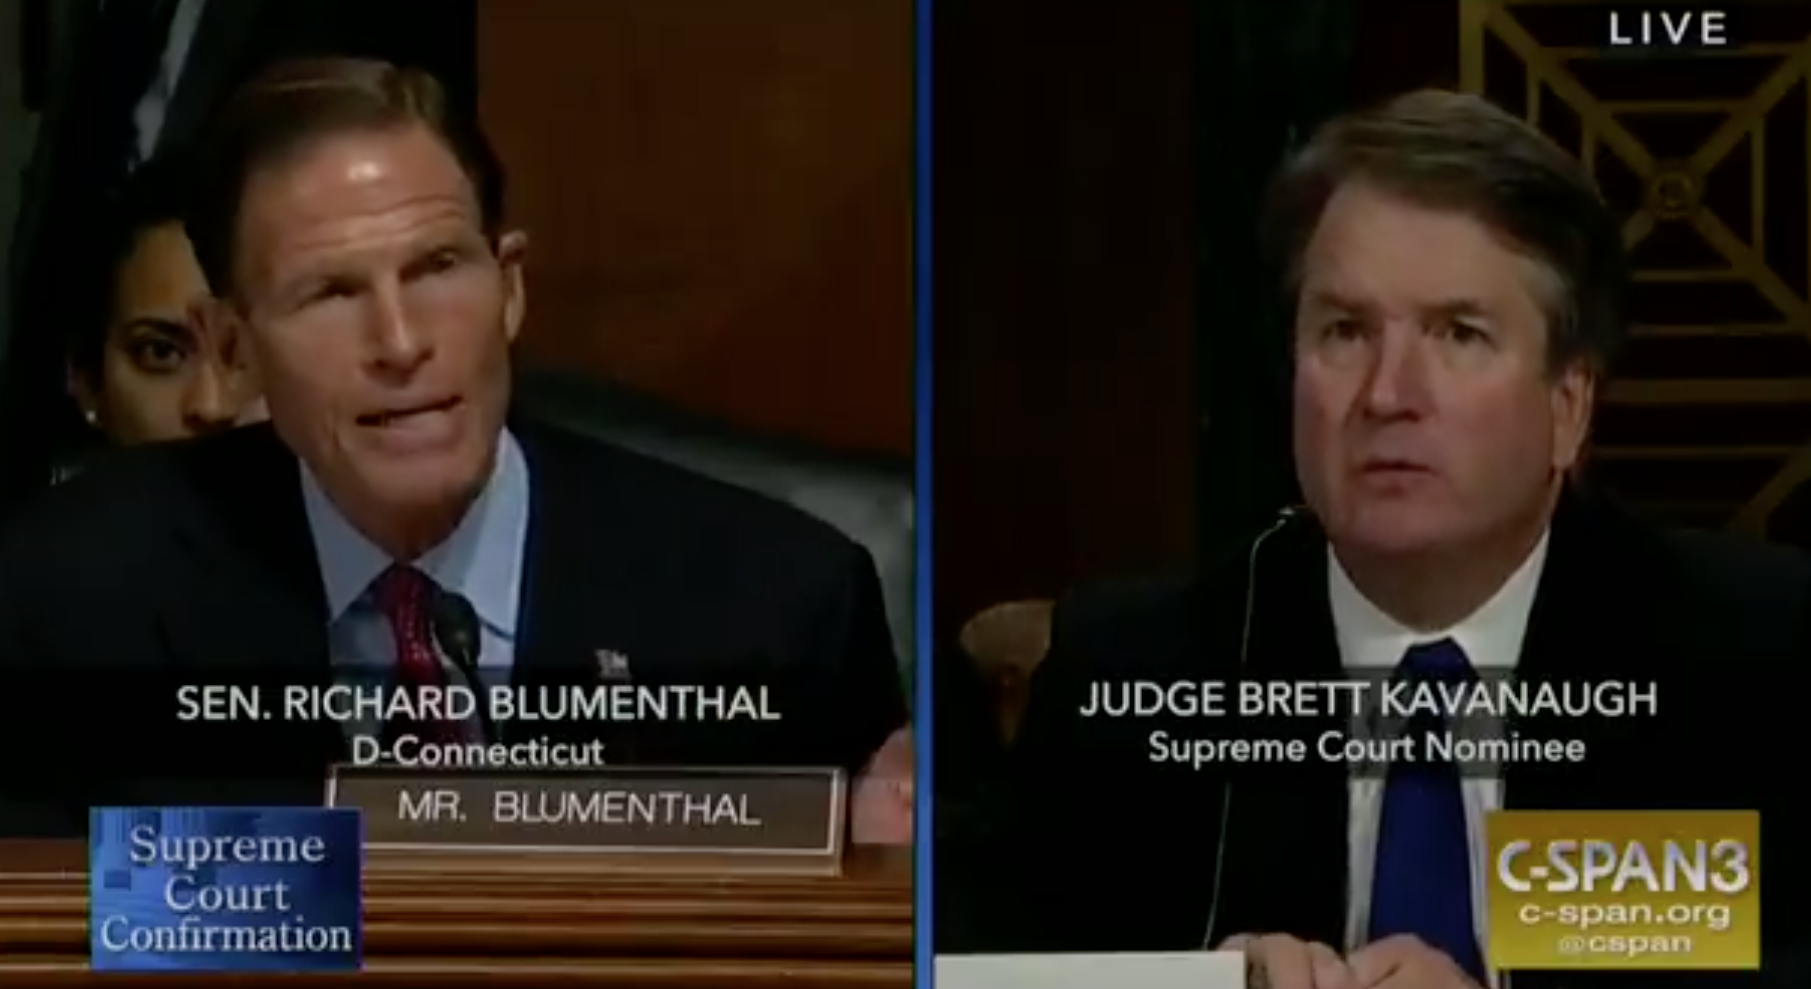 Kavanaugh sounded like he was 'wrongly accused' at hearing, Flake says